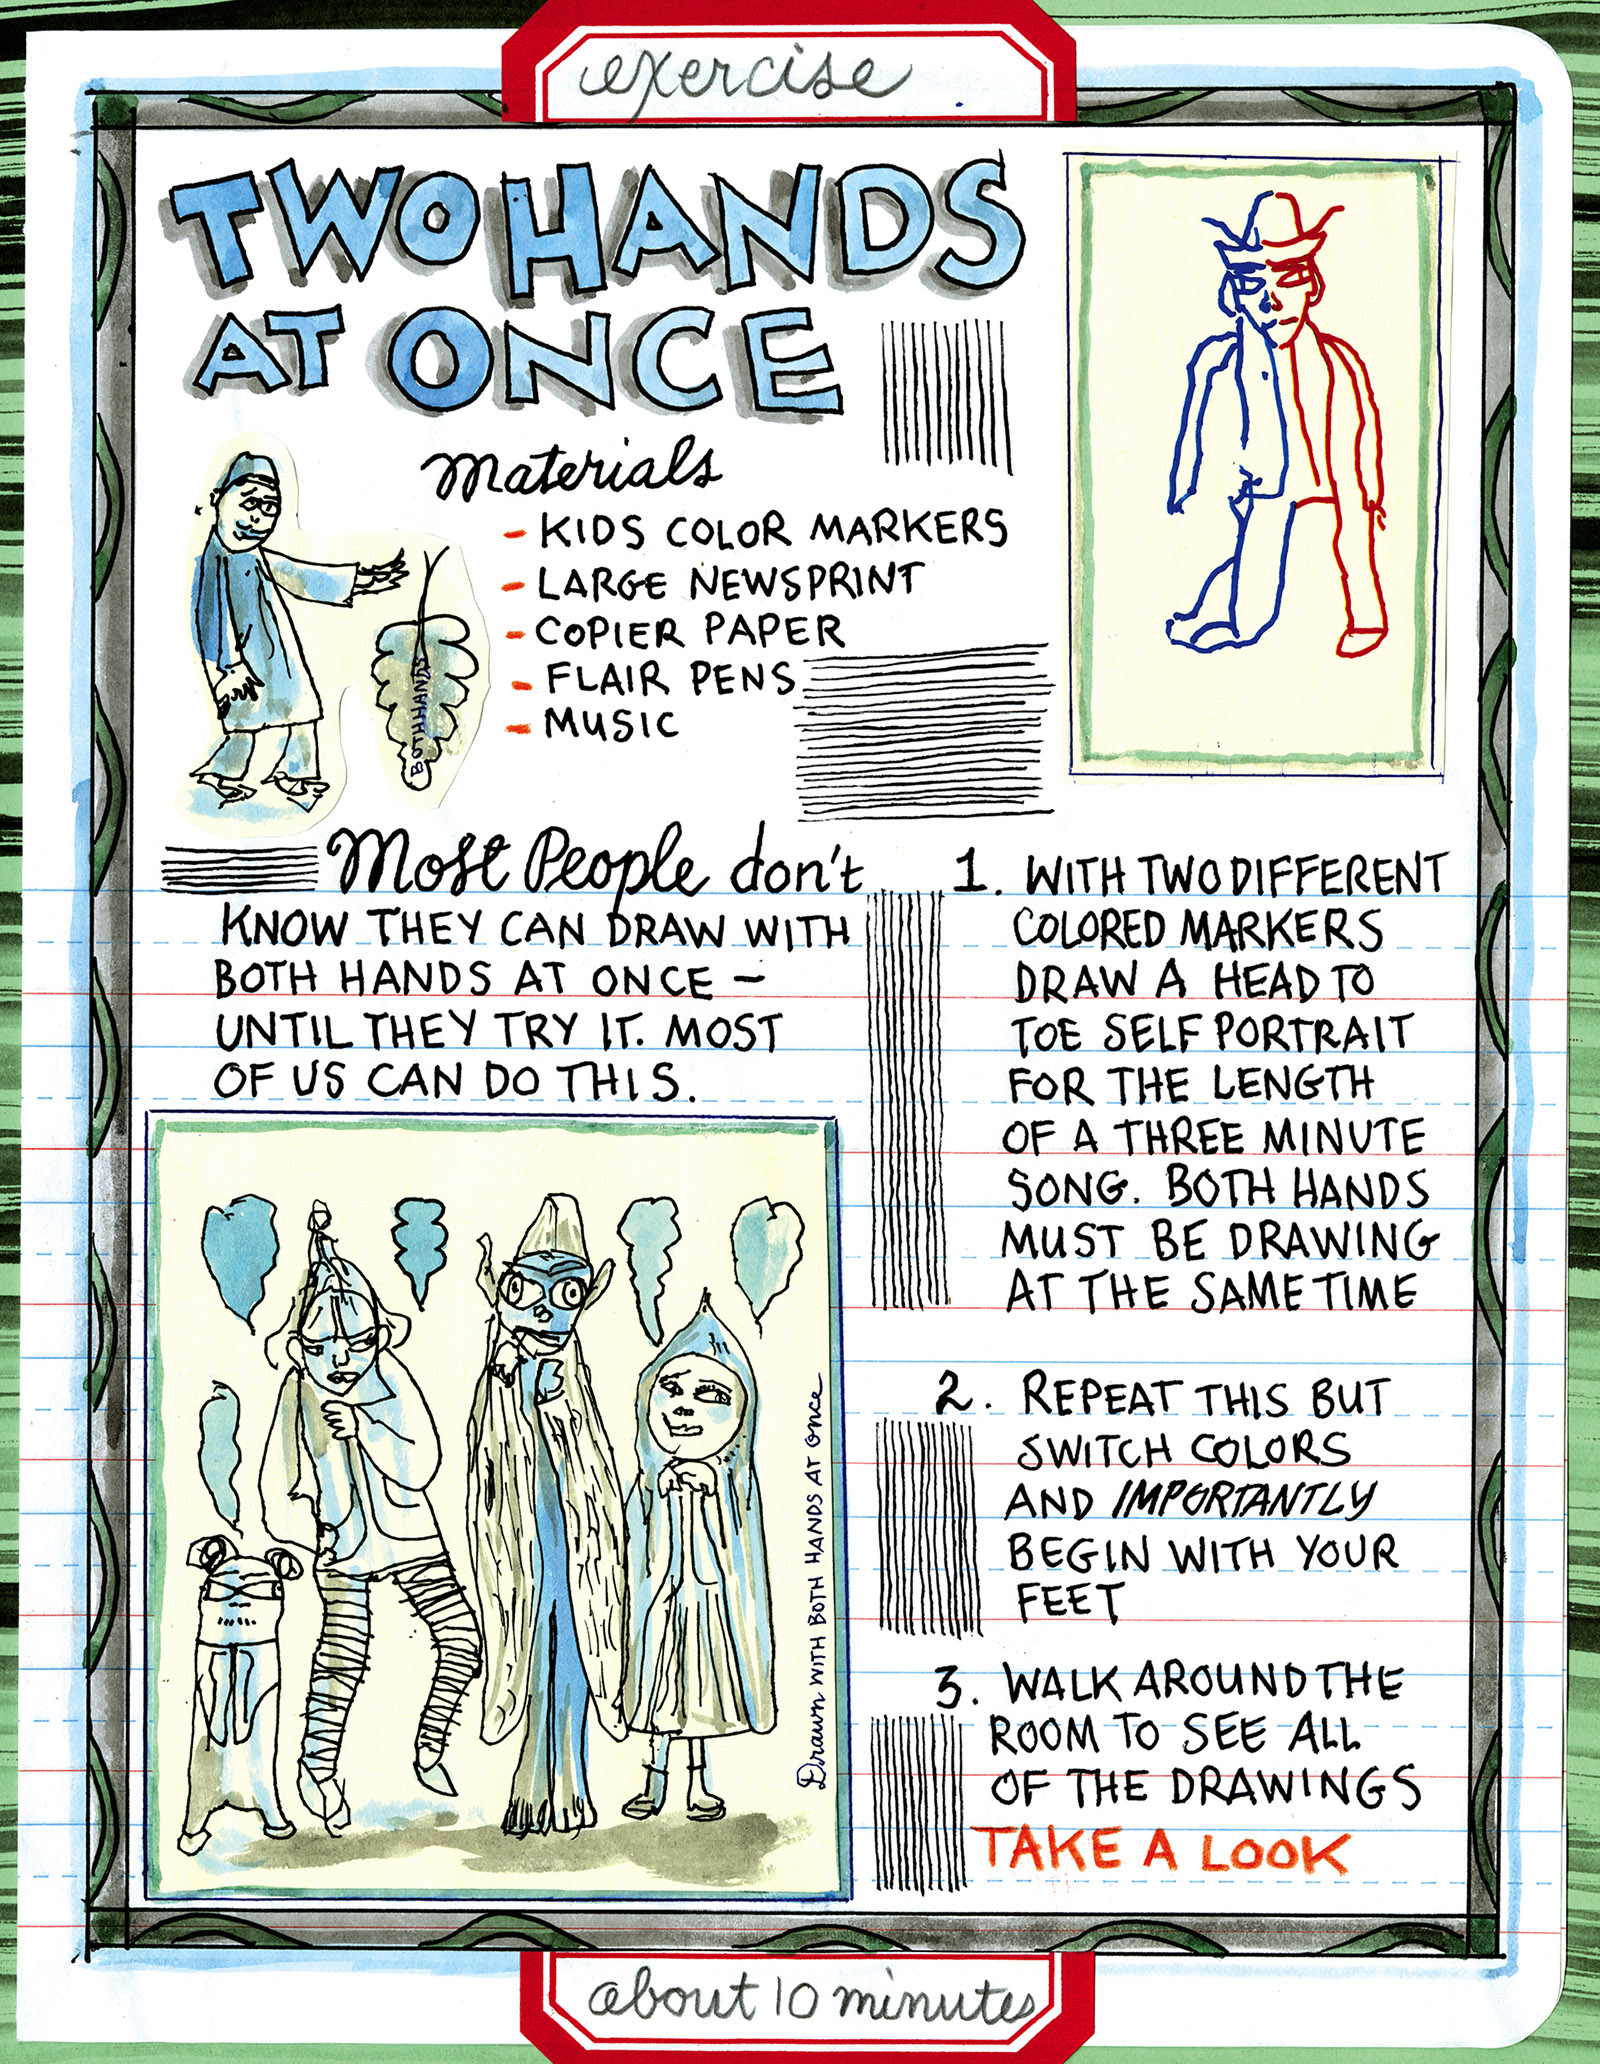 A page from Making Comics by Lynda Barry